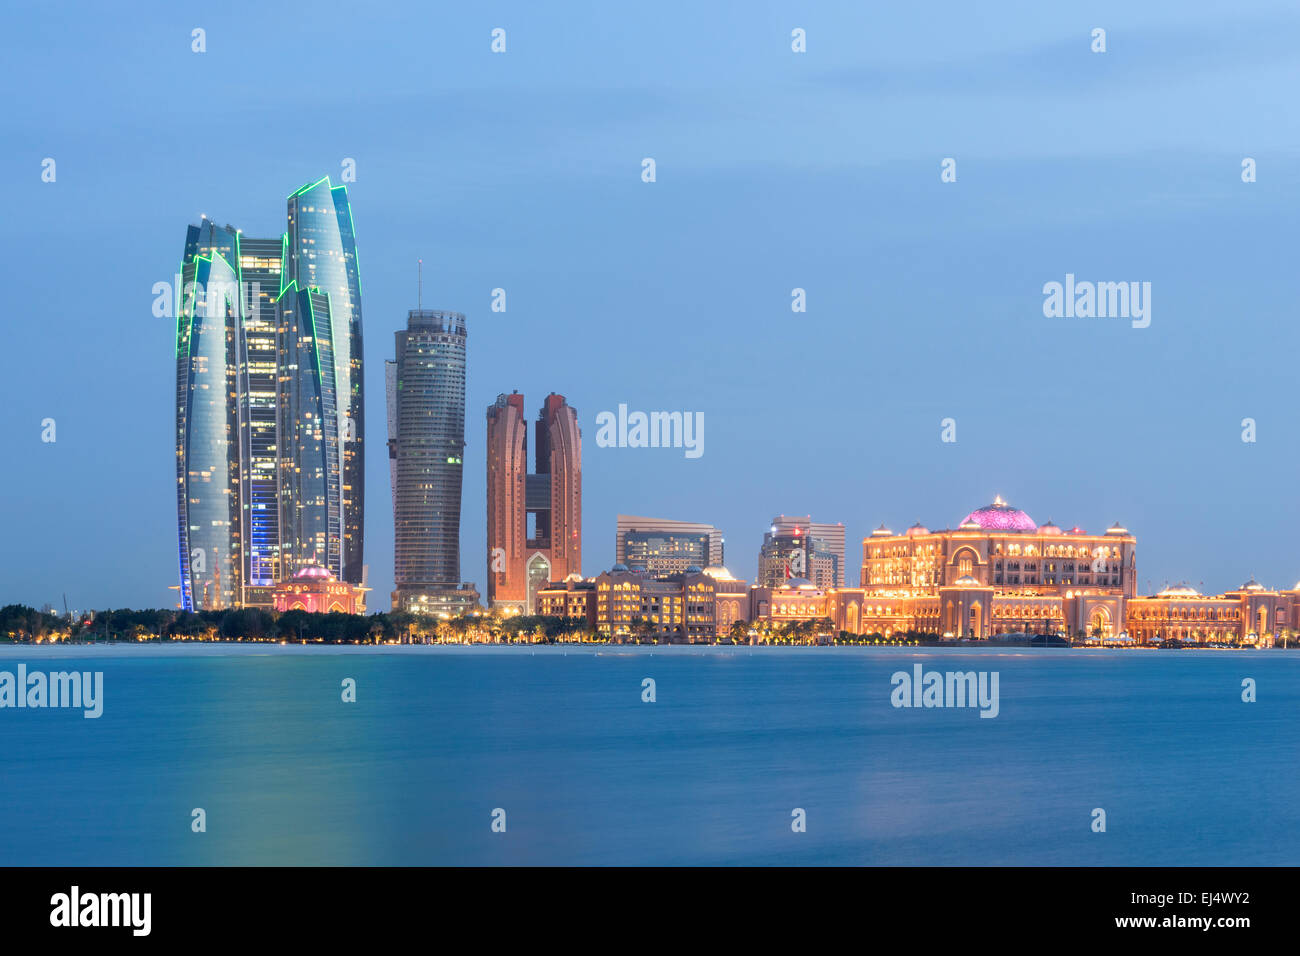 Evening skyline view of Abu Dhabi in United Arab Emirates - Stock Image